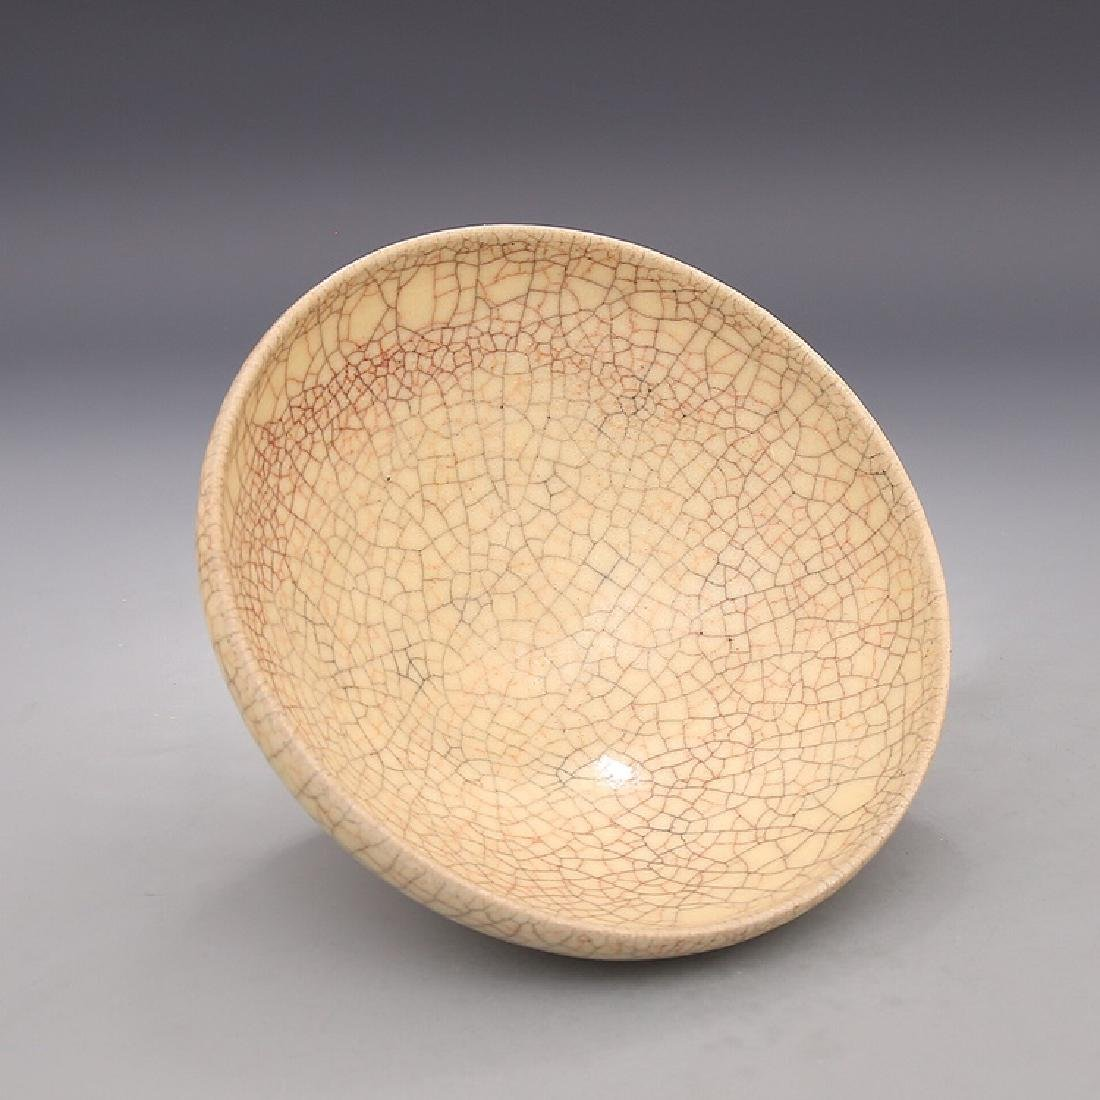 Chinese Song Dynasty Ge Ware Cracked Pattern Porcelain - 4